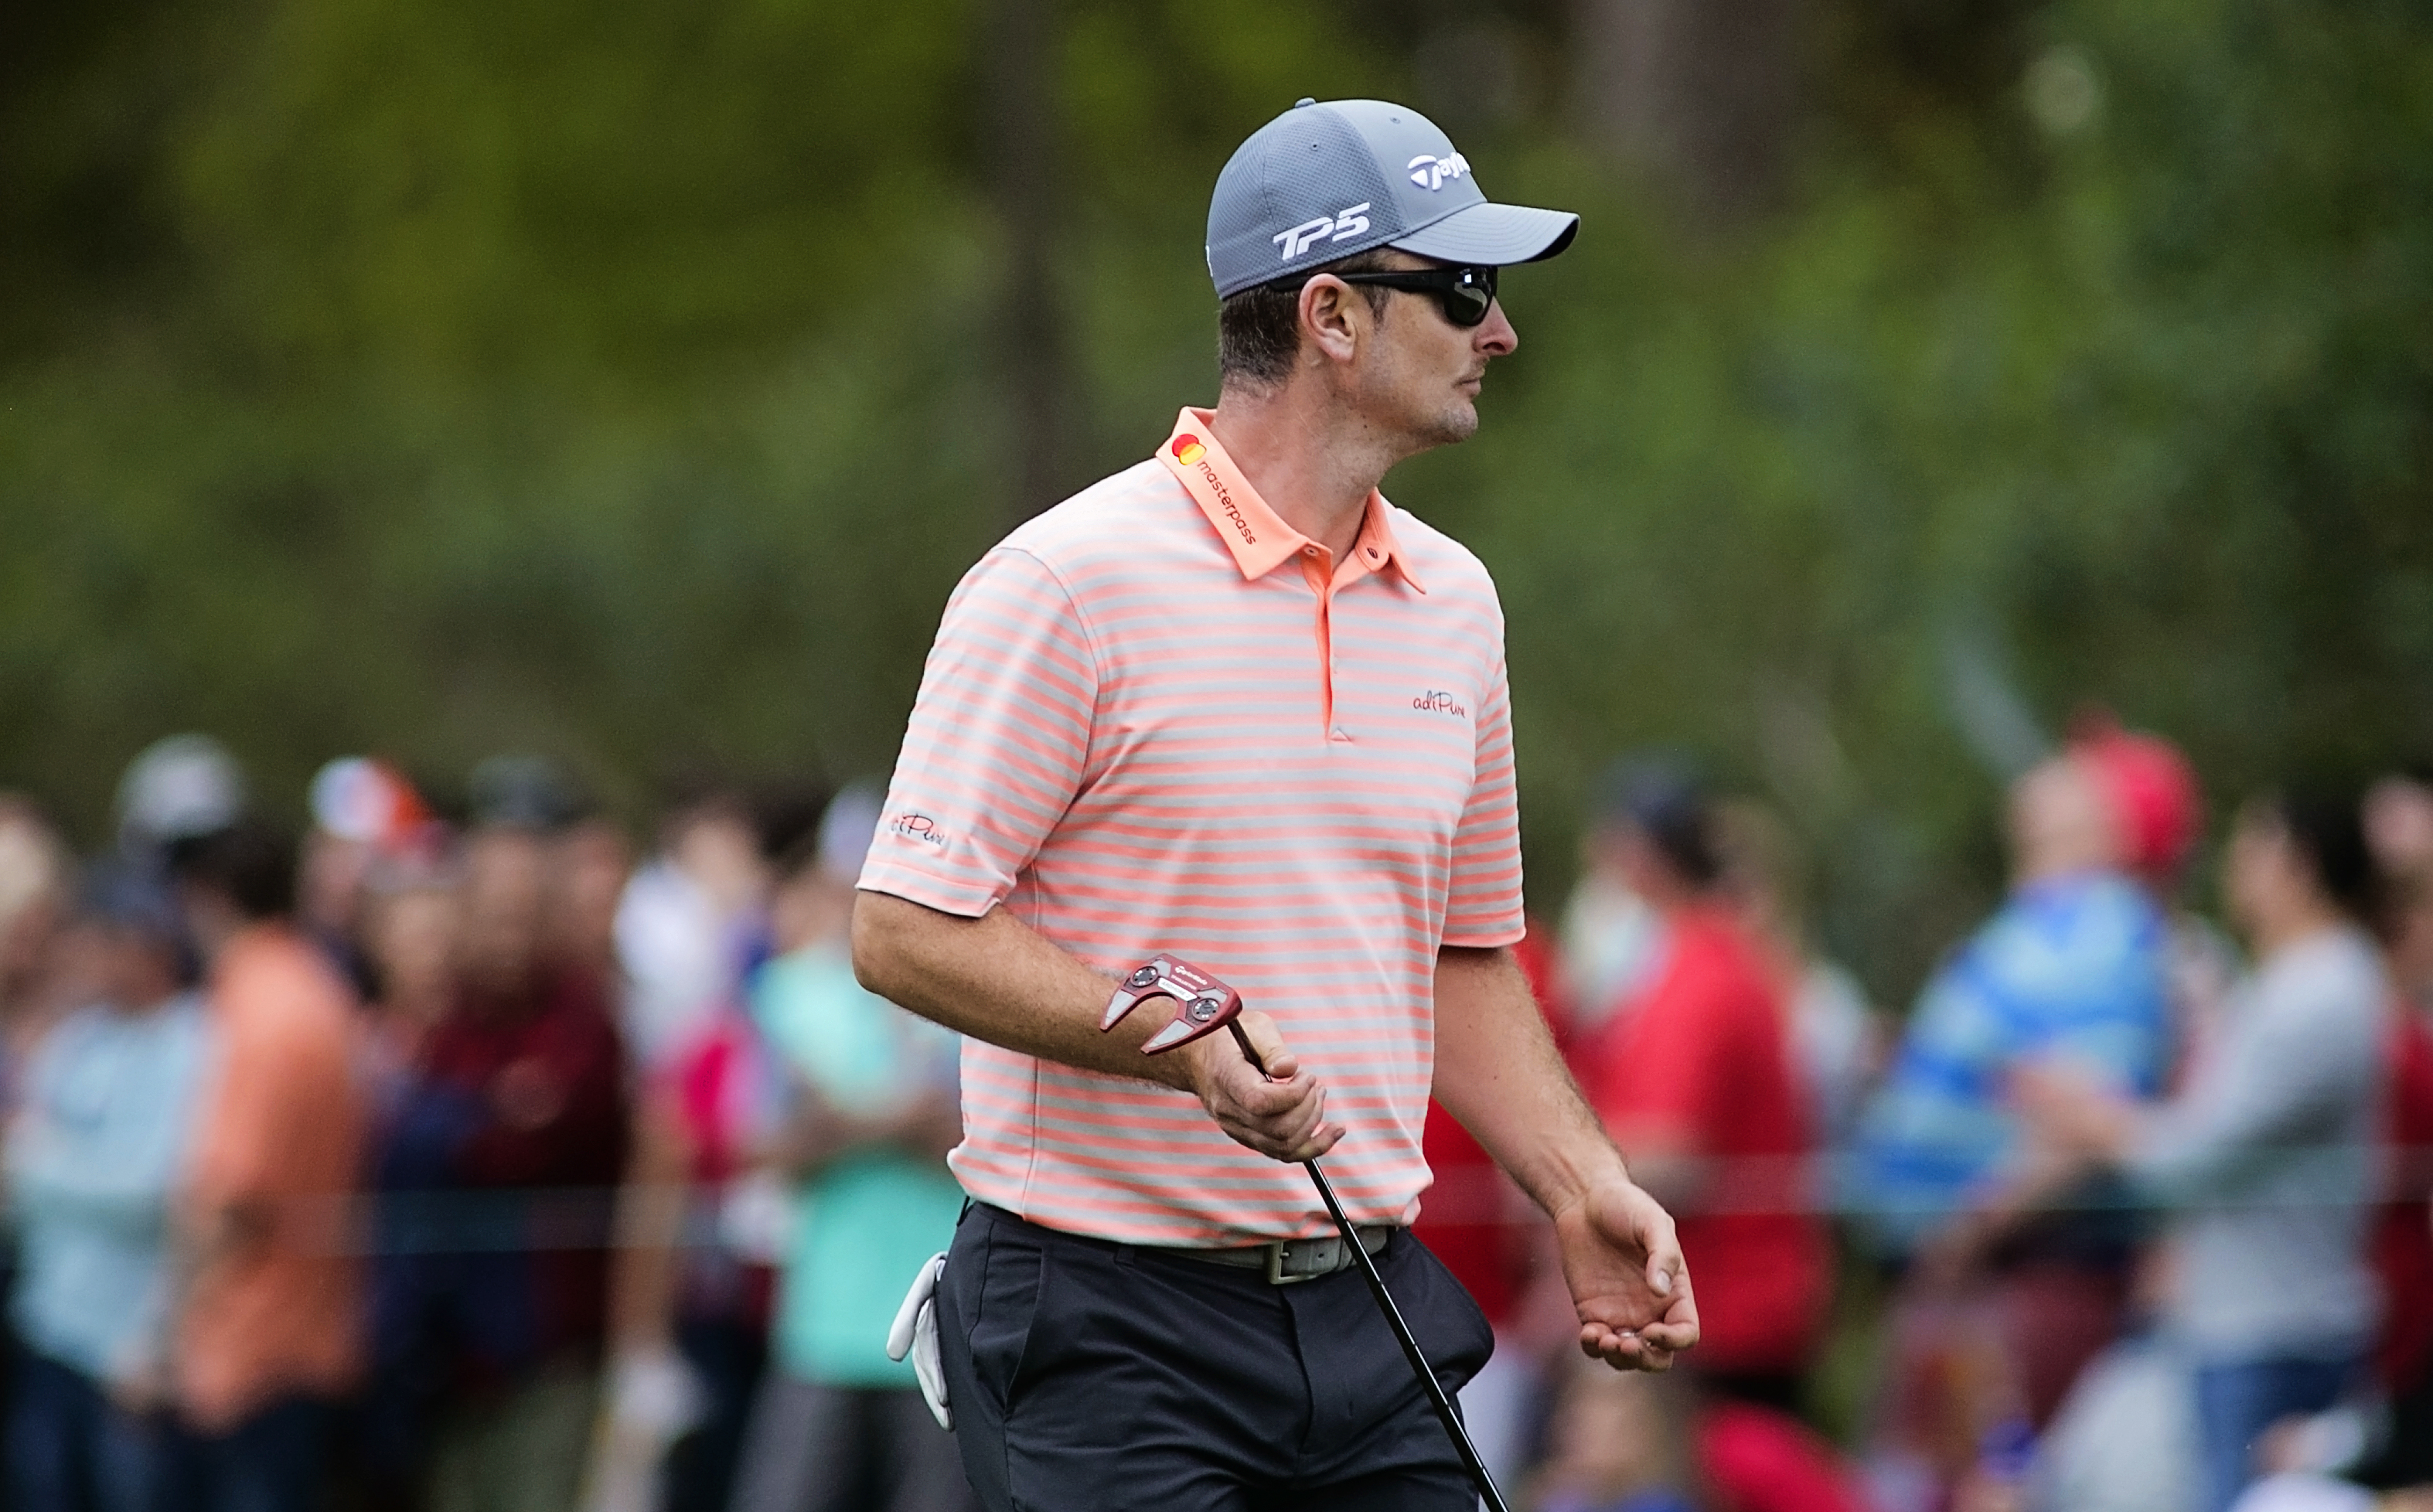 Justin Rose is tied for second, too./CARMEN MANDATO